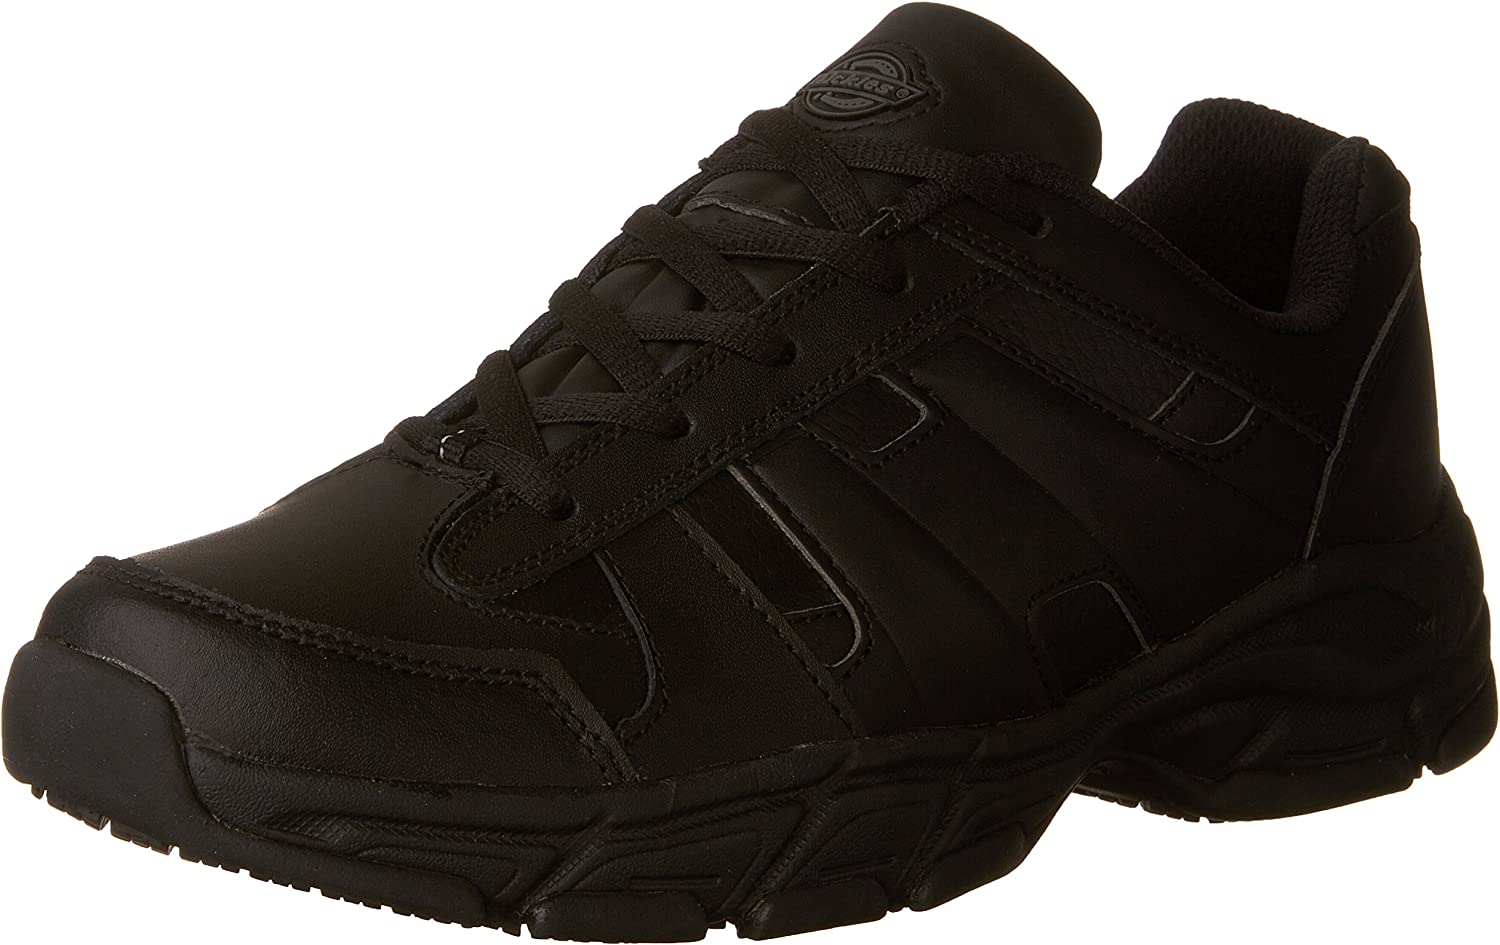 Dickies Men's Athletic Lace Work shoes,Black,13 M US